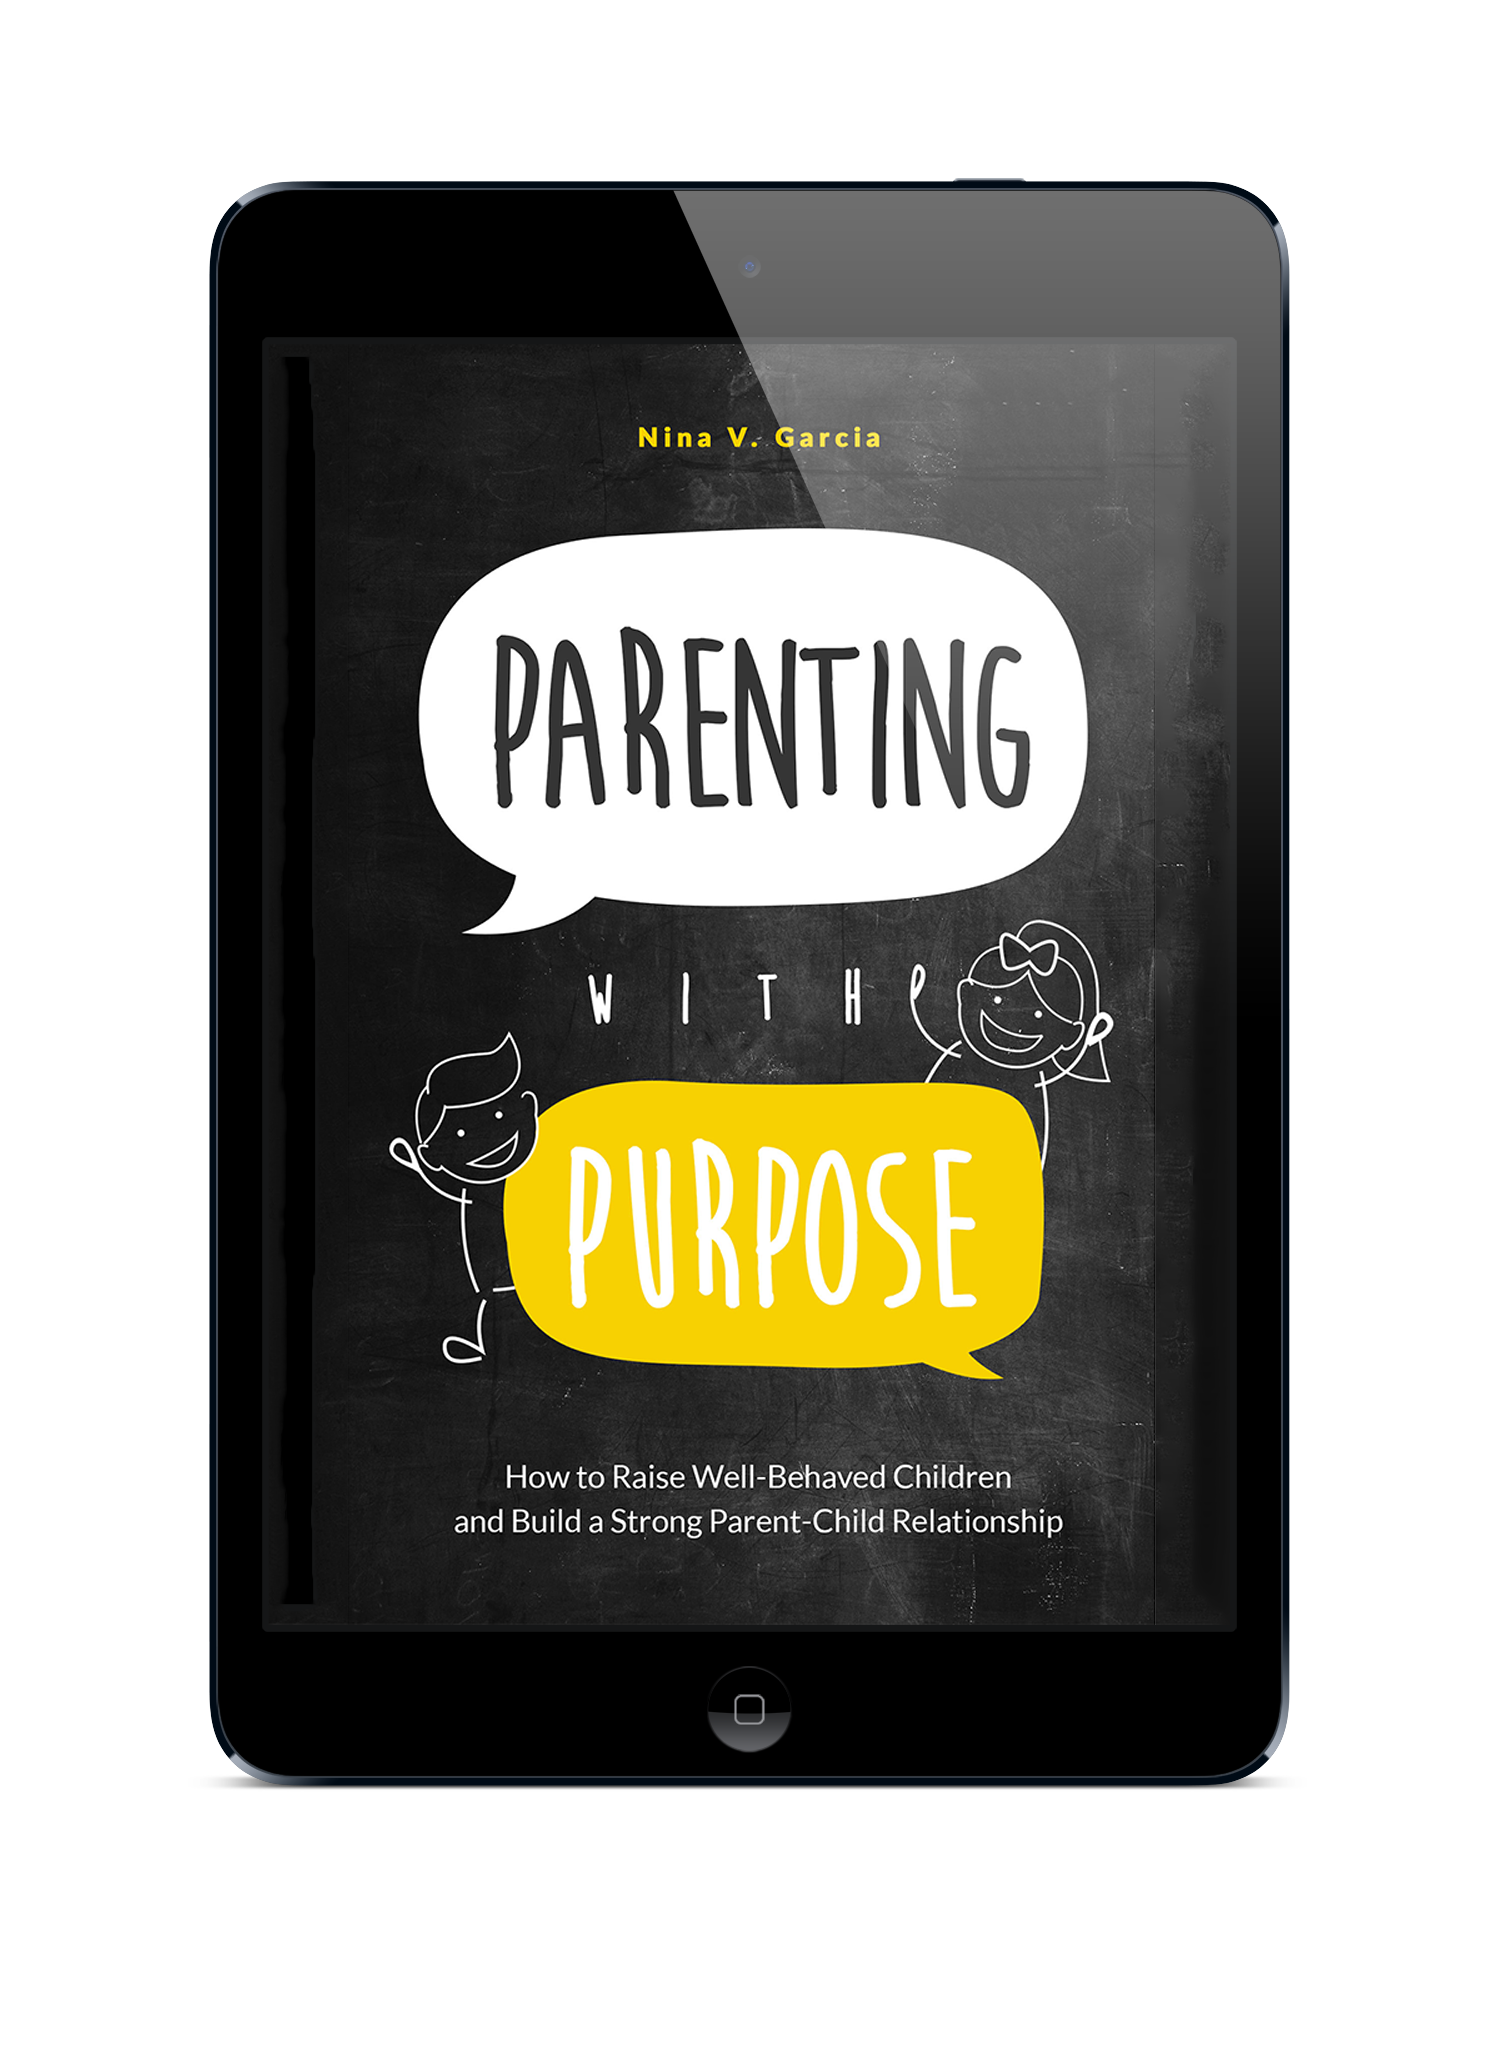 In this practical, eye-opening and action-oriented book, learn how parenting with purpose uses connection to strengthen your parent-child relationship.